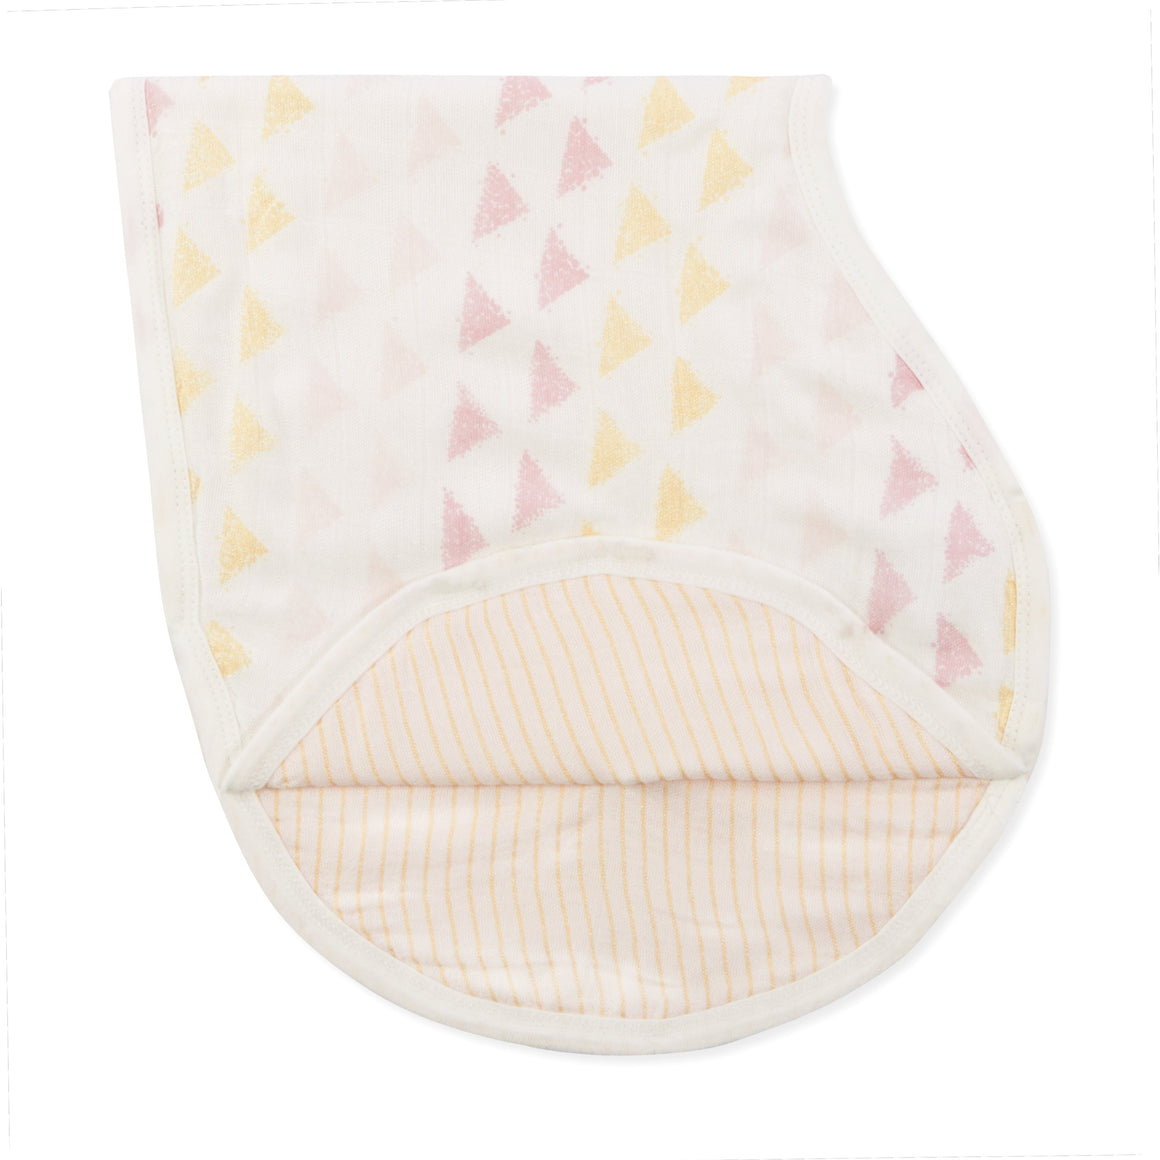 aden + anais metallic primrose birch silky soft burpy bib single